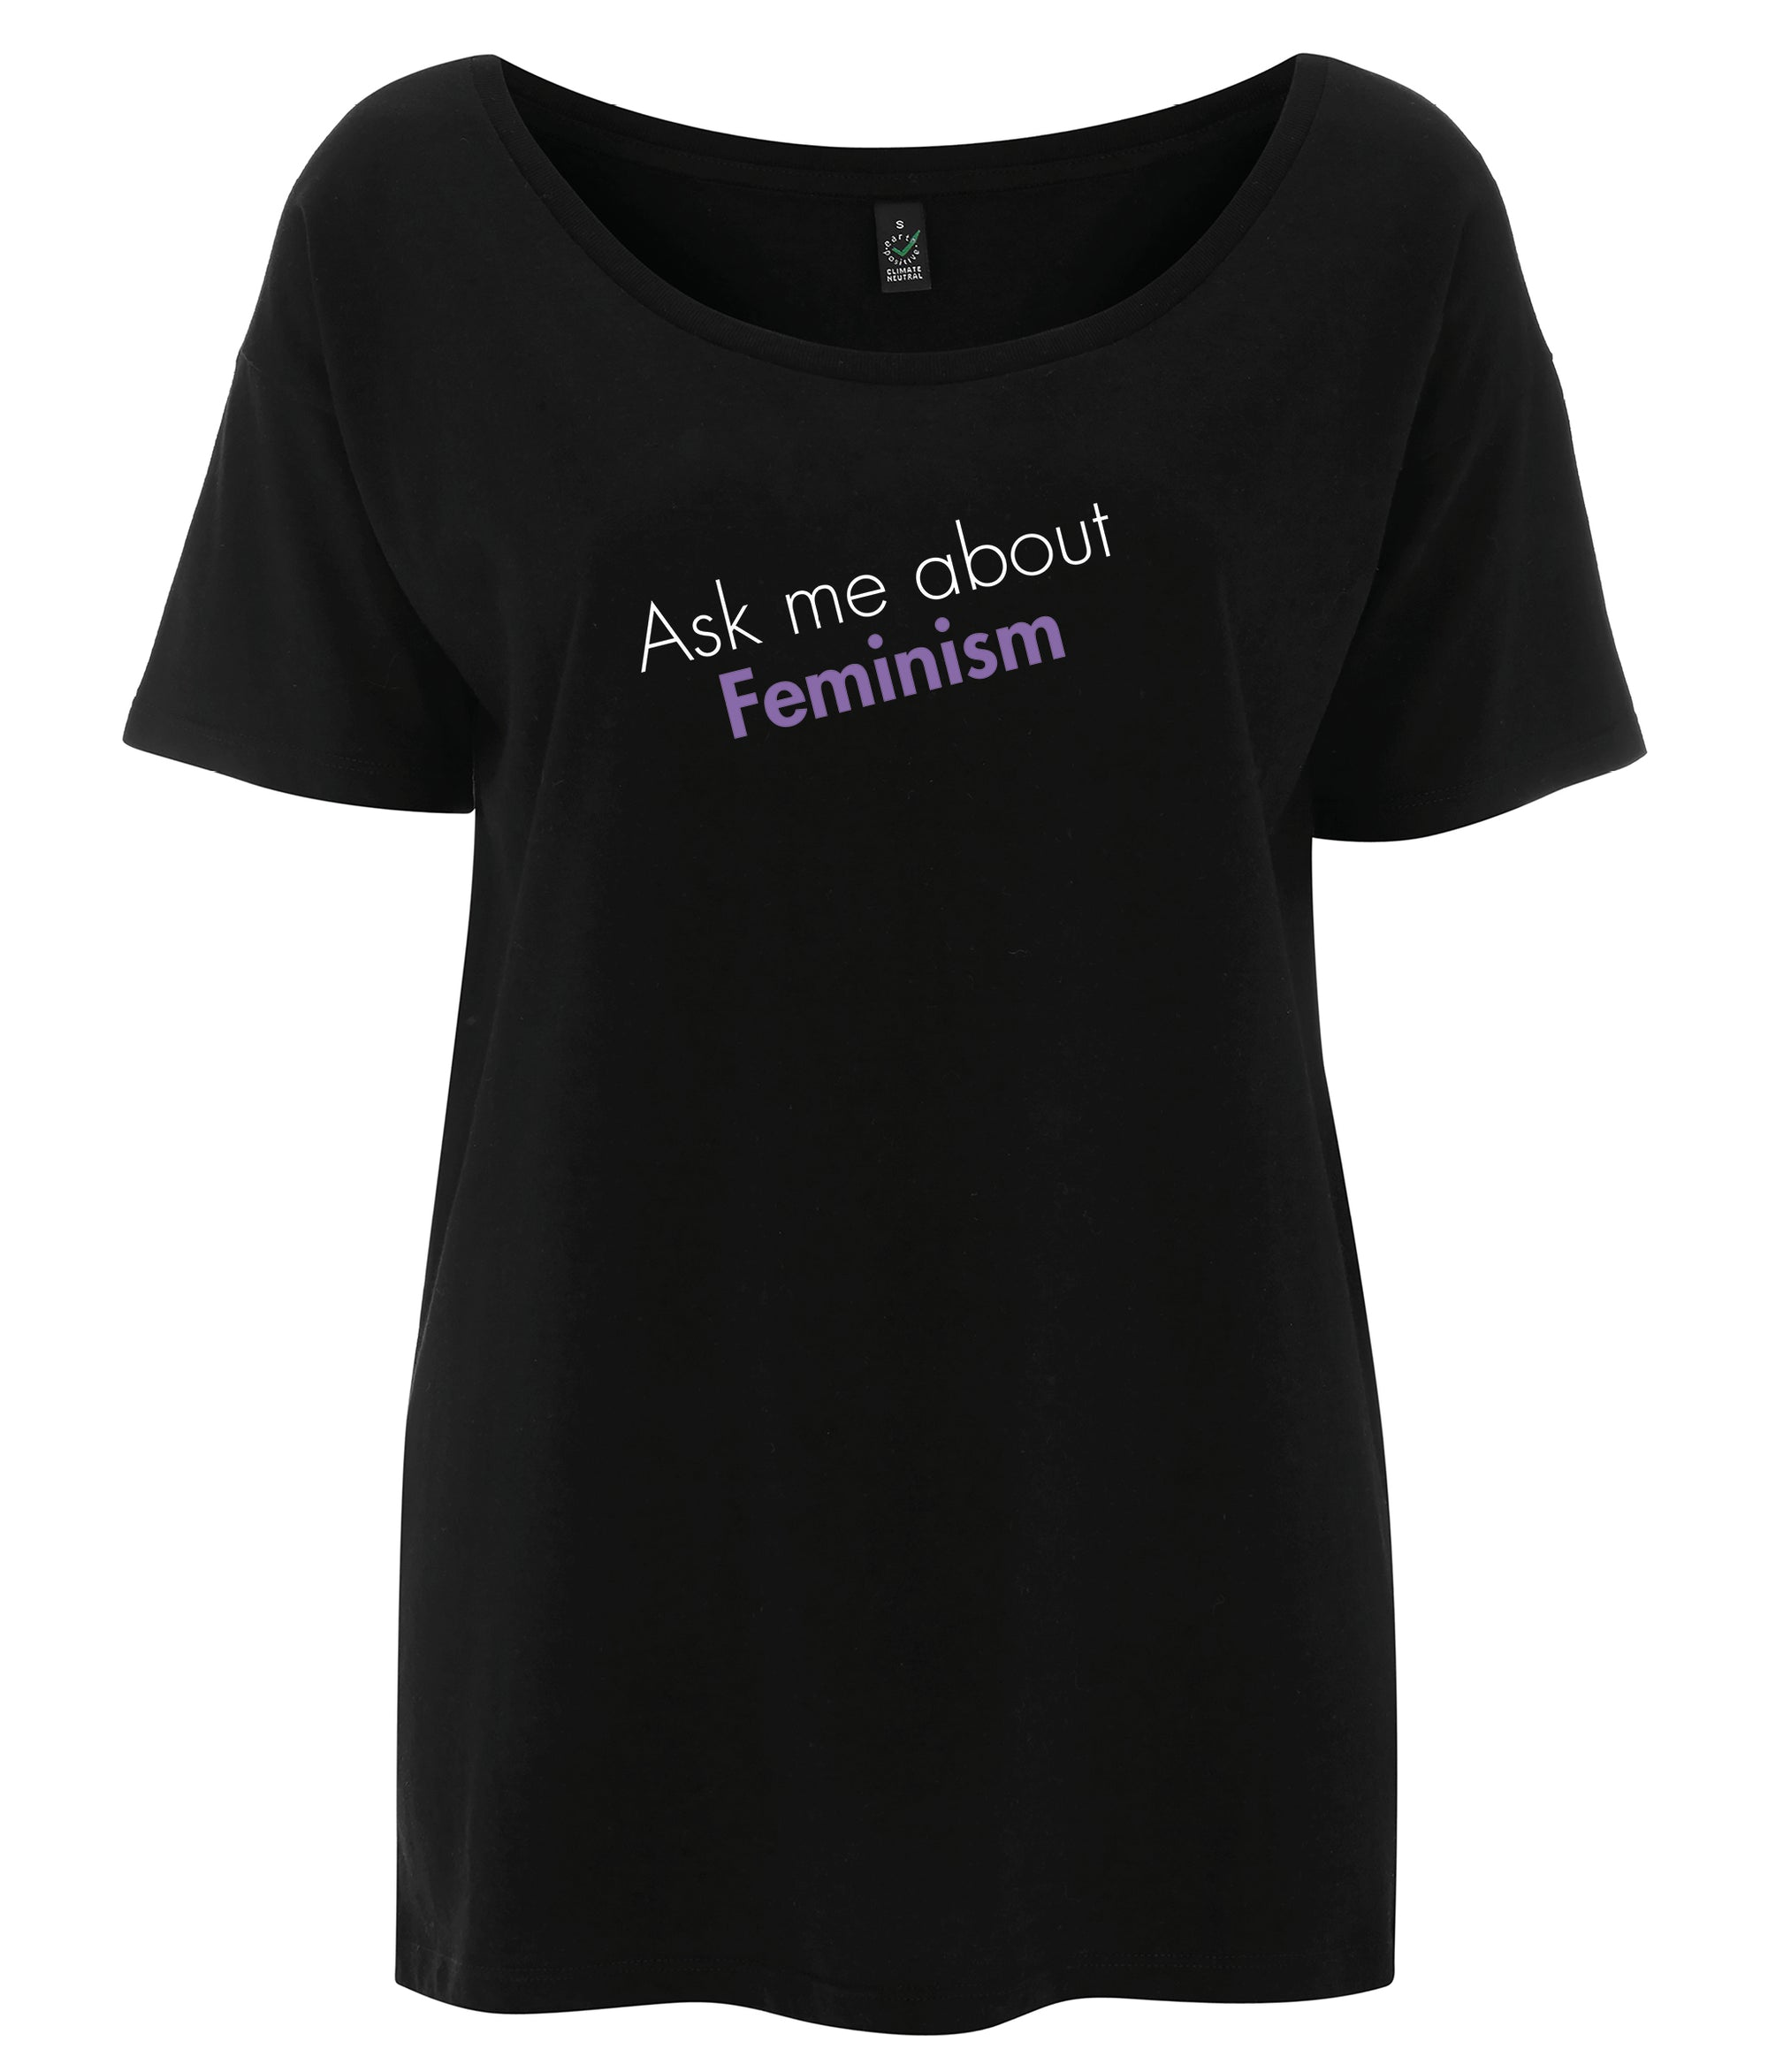 Ask Me About Feminism Tencel Blend Oversized Feminist T Shirt Black